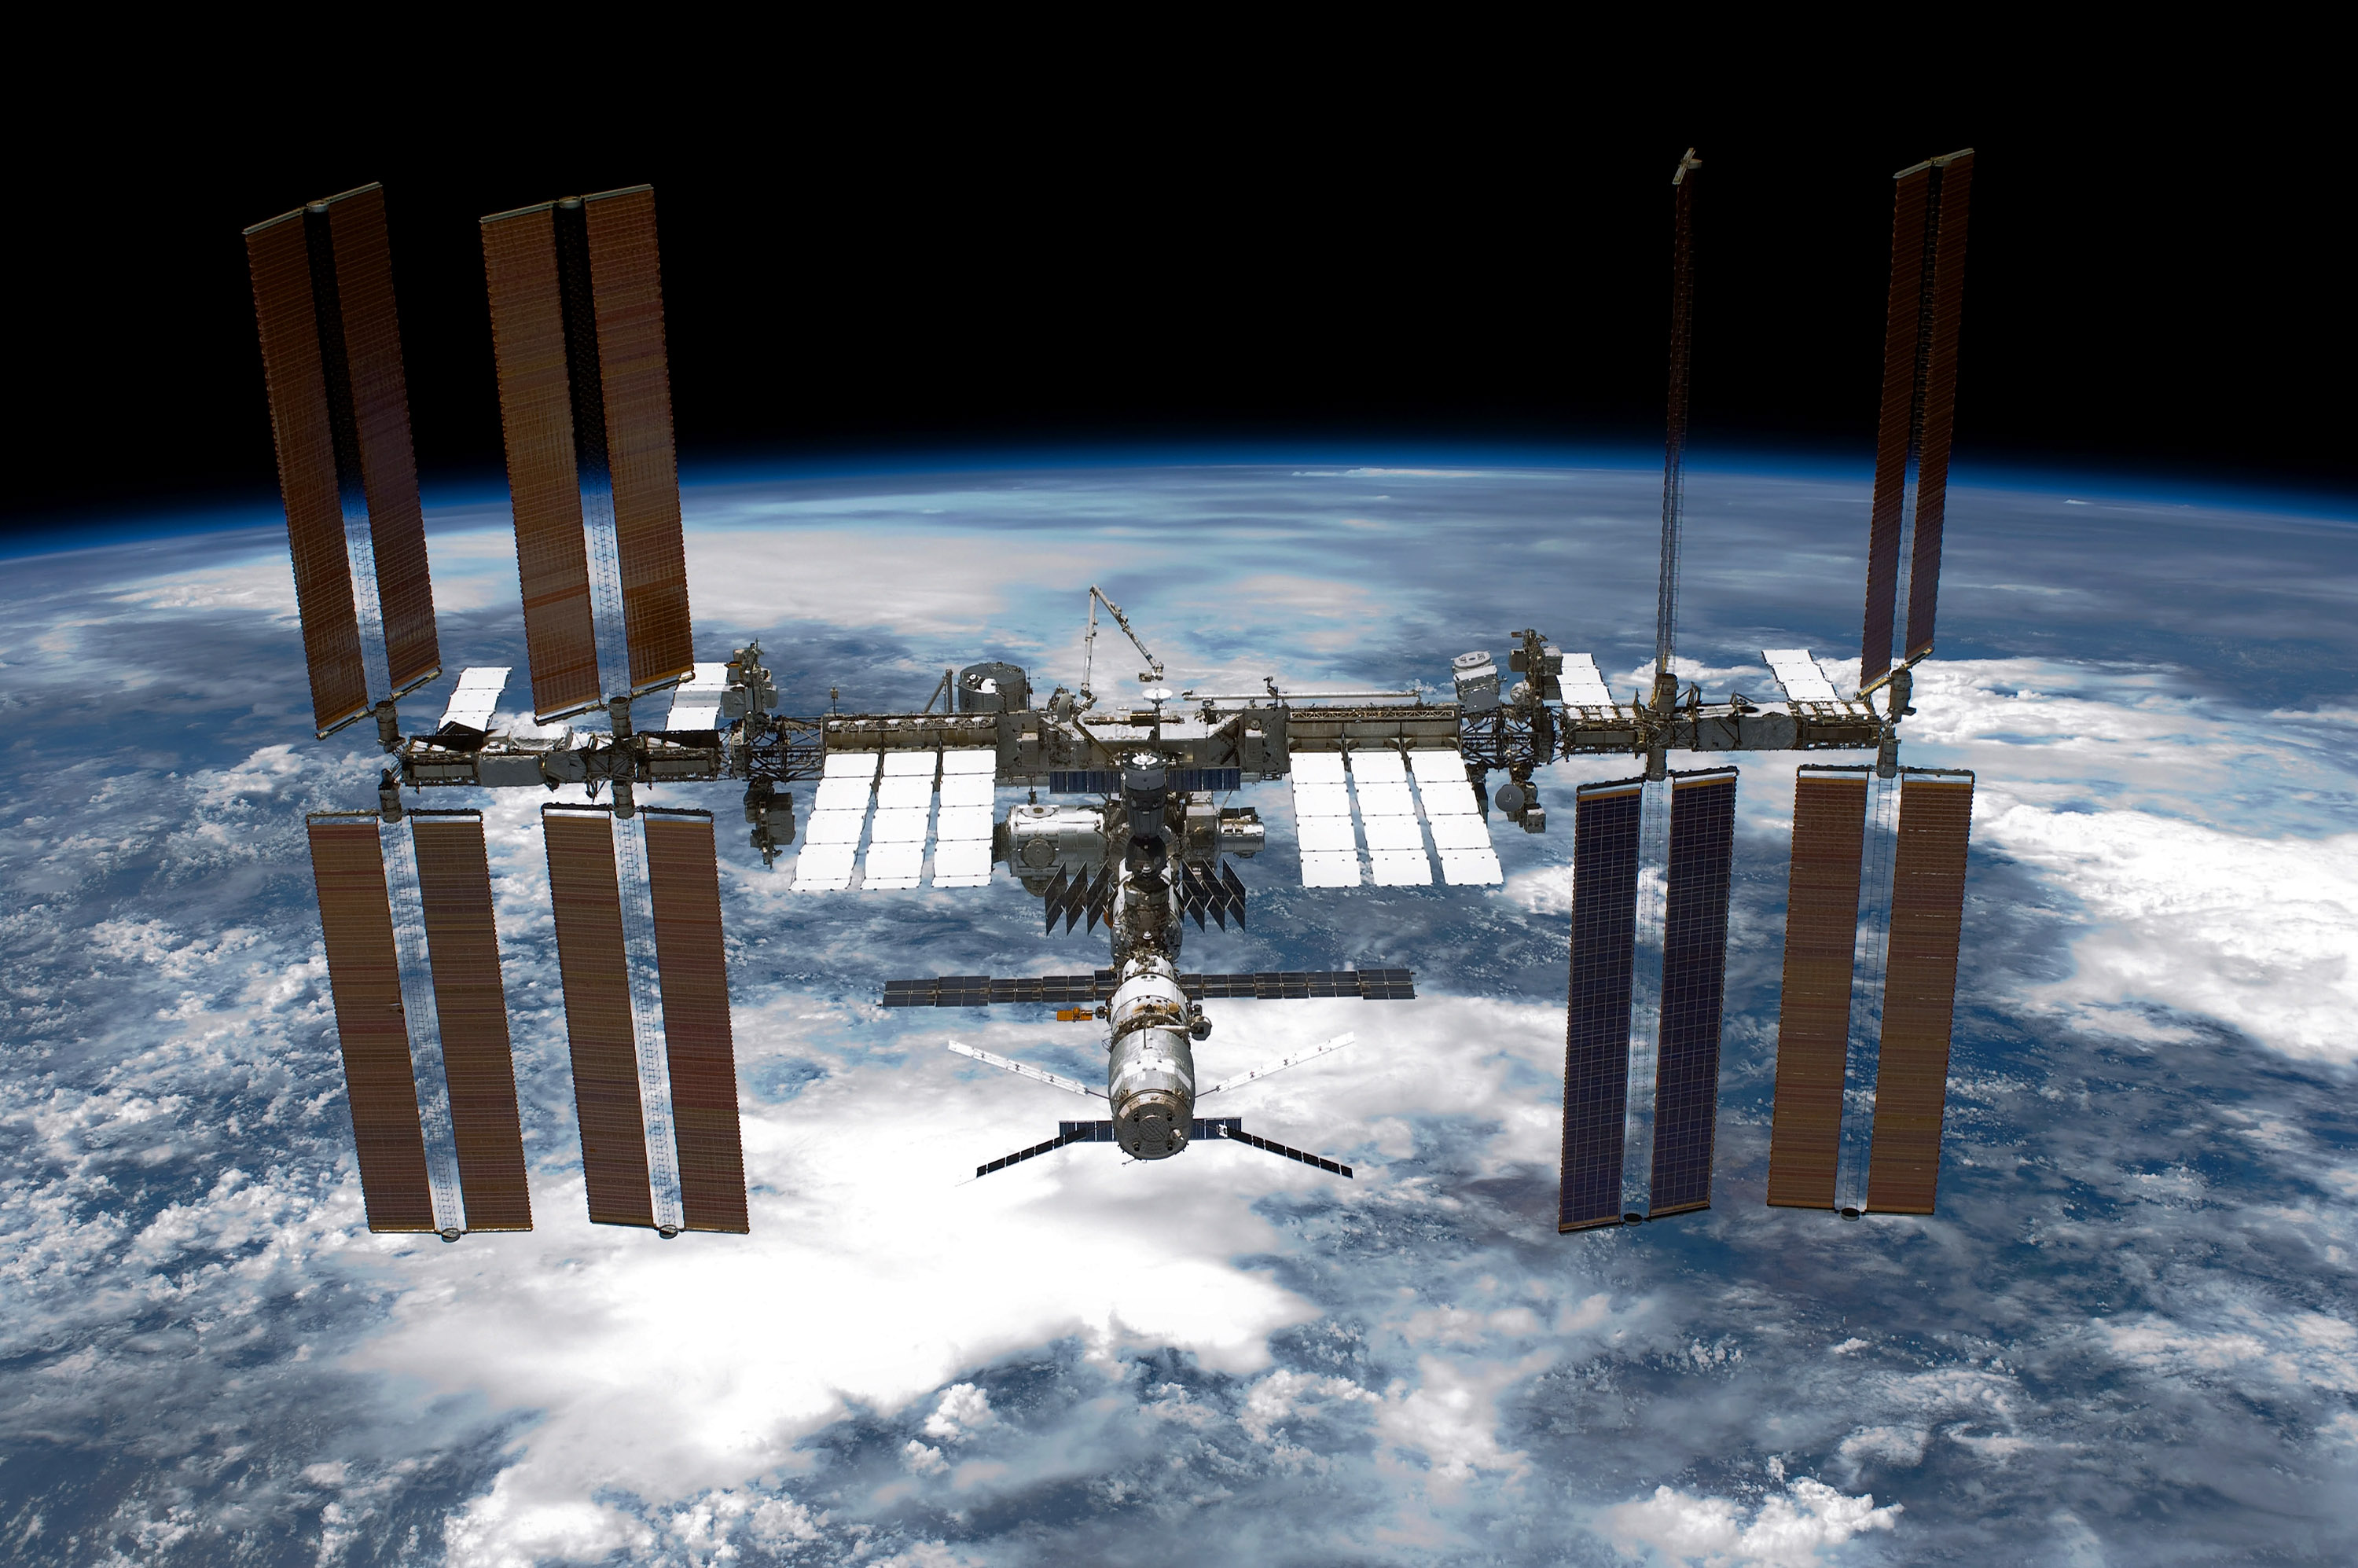 The space station as photographed by the shuttle Endeavour